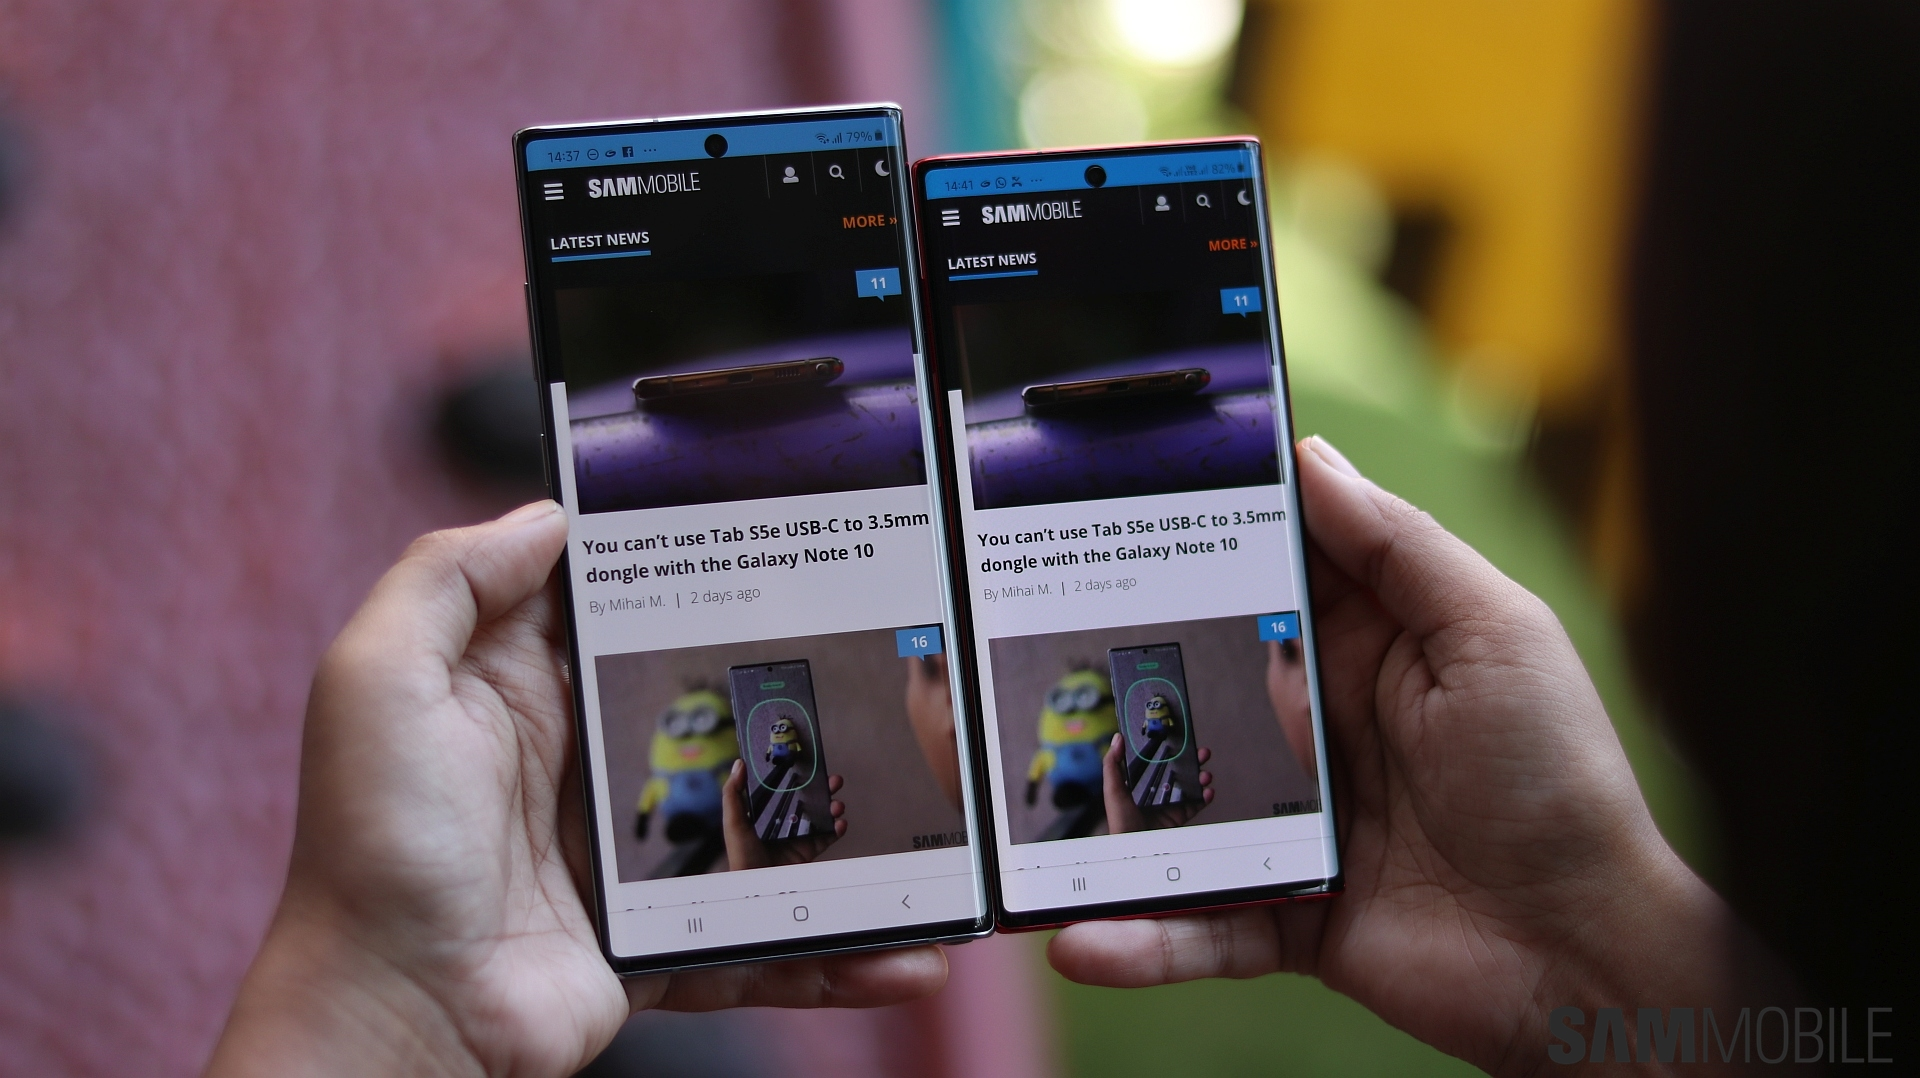 Samsung Galaxy Note 10 Plus review: Big, beautiful, and